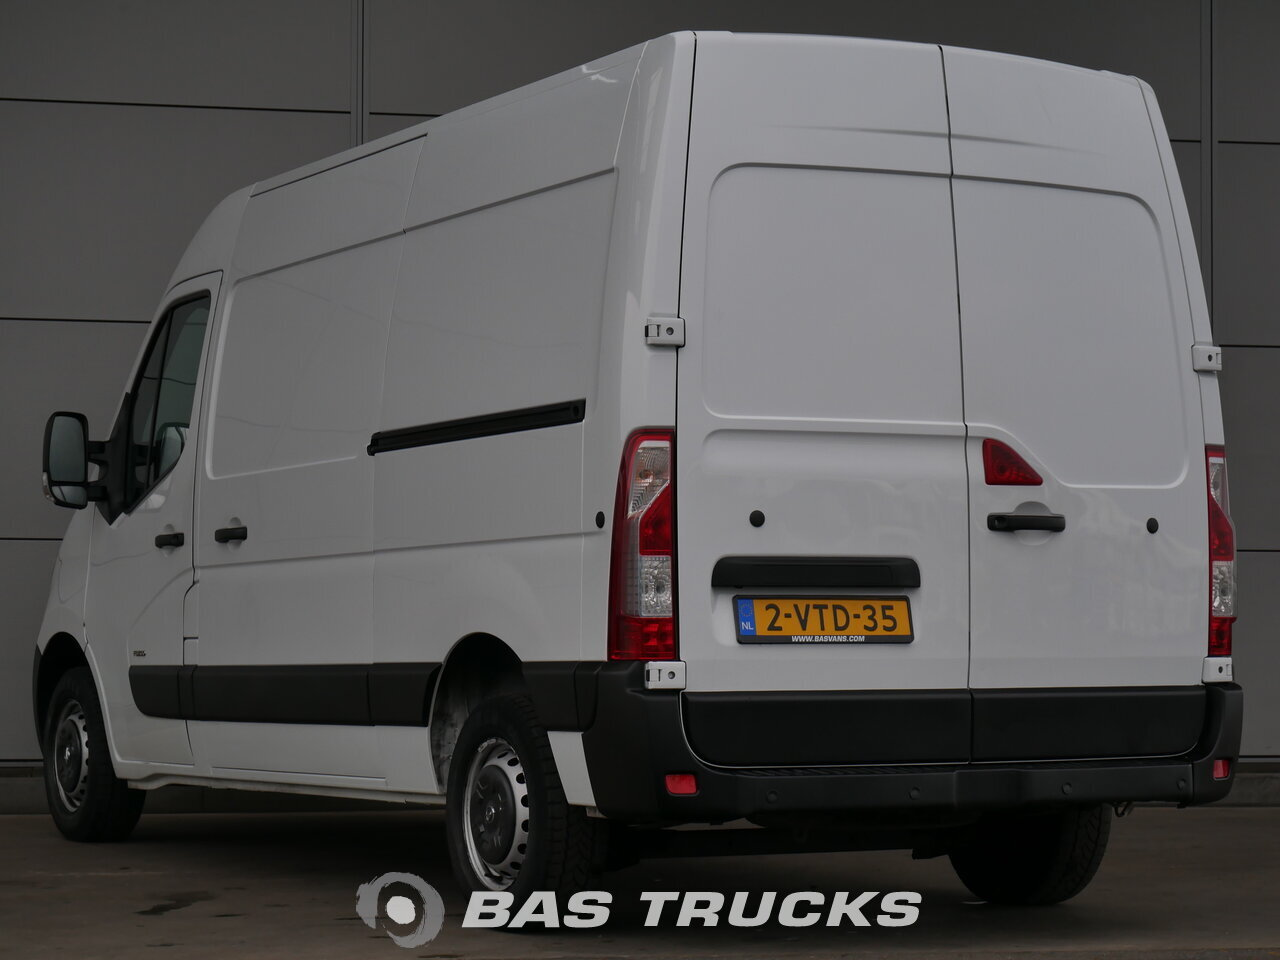 opel movano light commercial vehicle euro norm 0 8900 bas vans. Black Bedroom Furniture Sets. Home Design Ideas